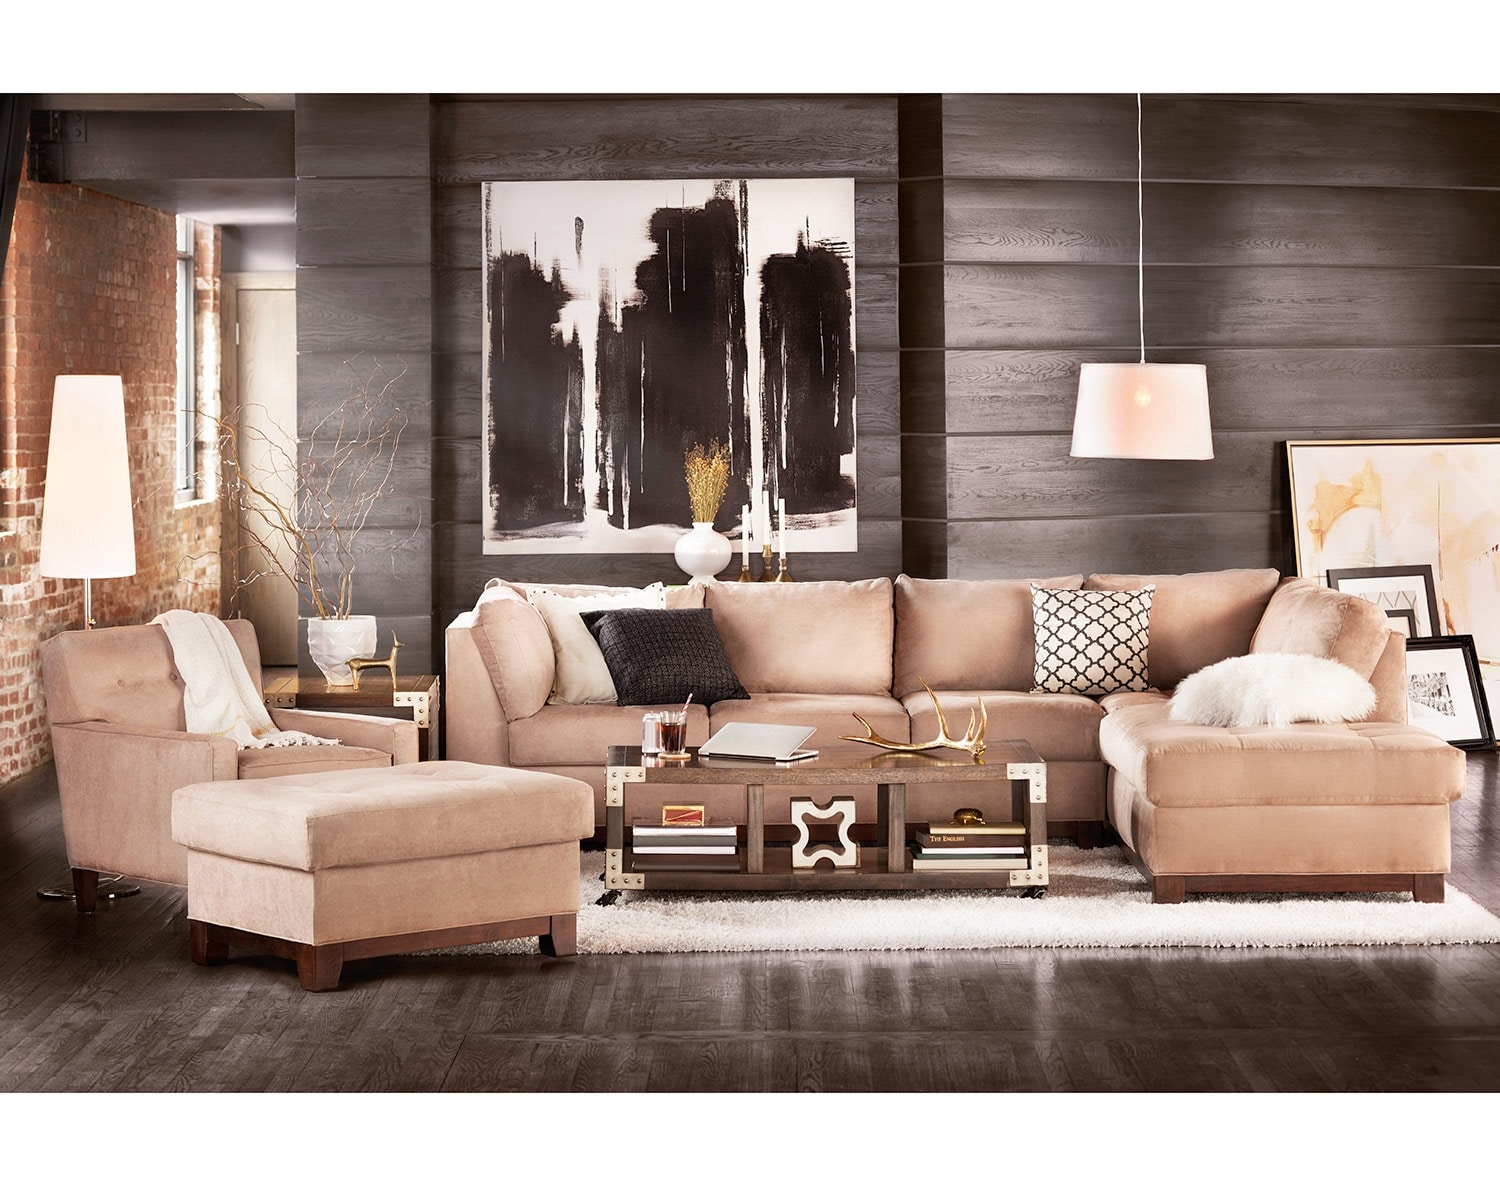 Value City Living Room Furniture Best Selling Living Room Furniture Value City Furniture